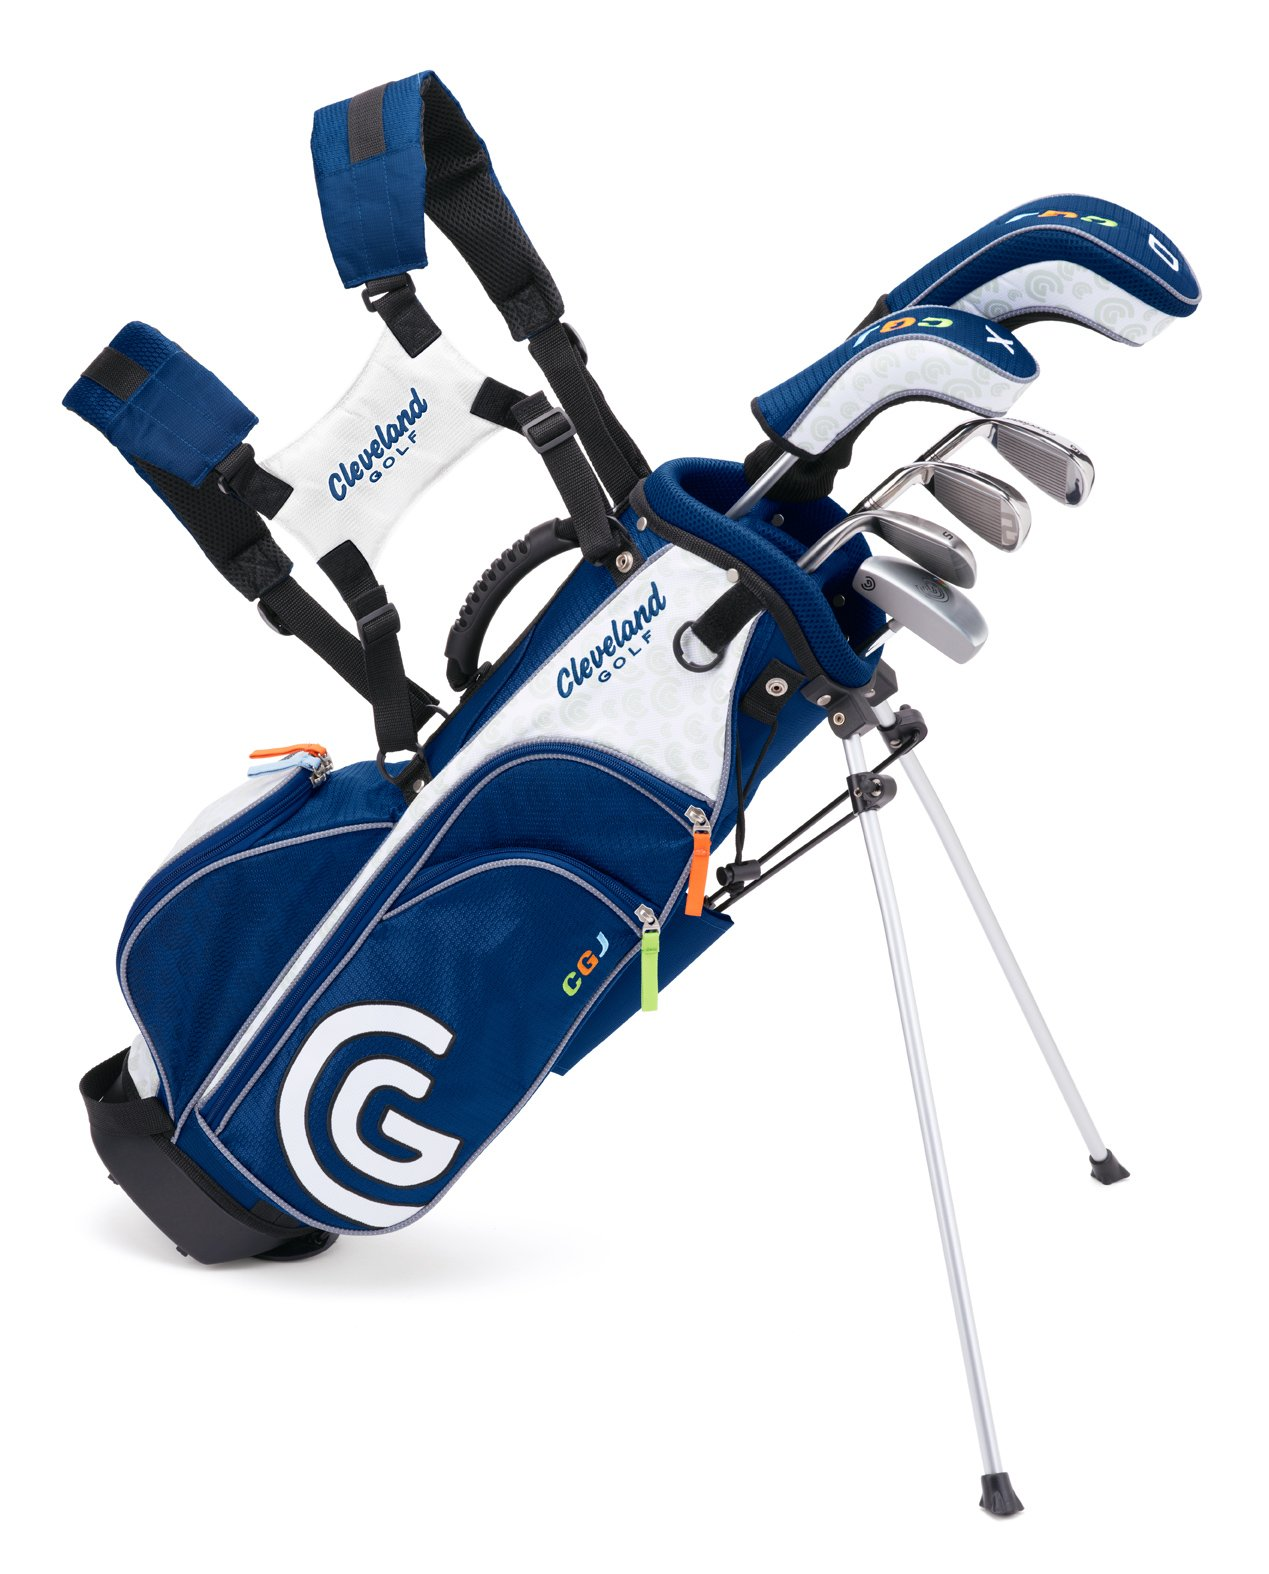 Cleveland Golf Junior Golf Set, Small Ages 4-6, 3 Clubs and Bag